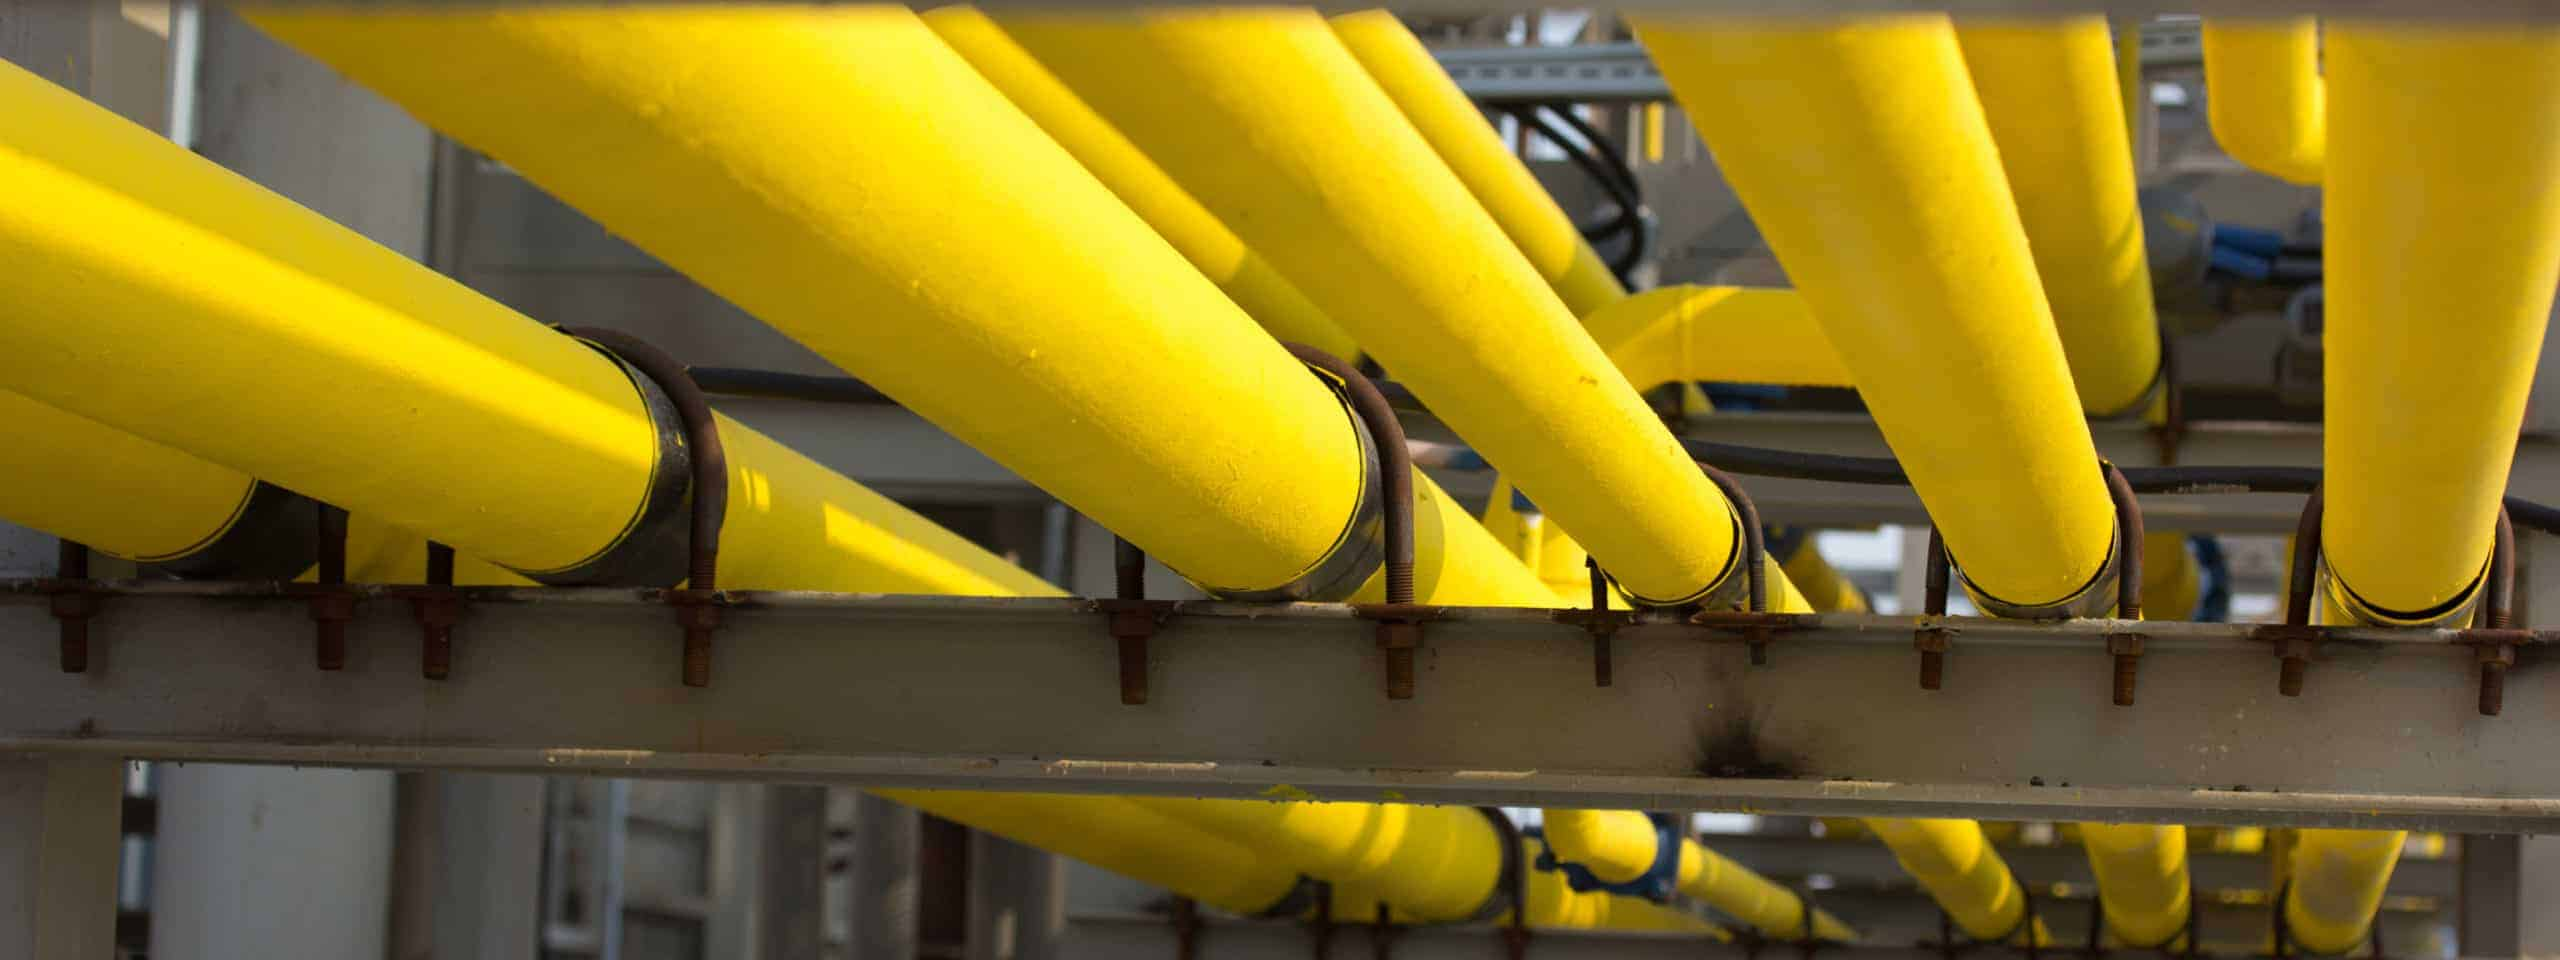 multiple yellow pipelines